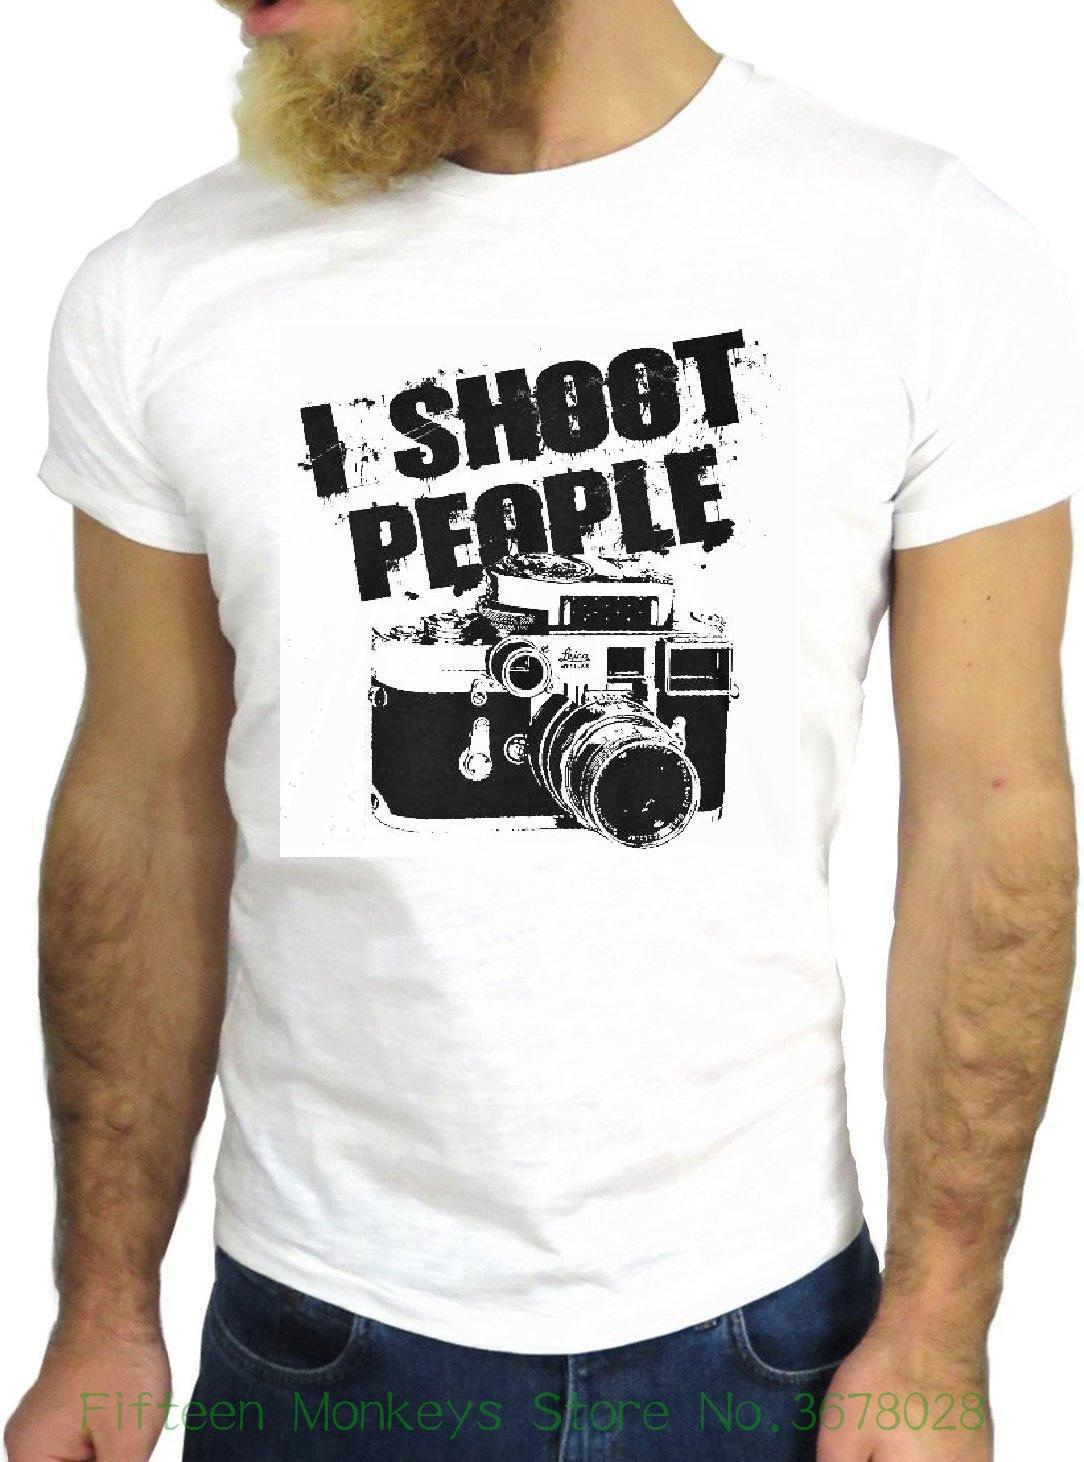 100 cotton geek family top tee t shirt jode z2320 i shoot people cool nice fotographer andy cool ny usa ggg24 cool shirt design tshirts printed from